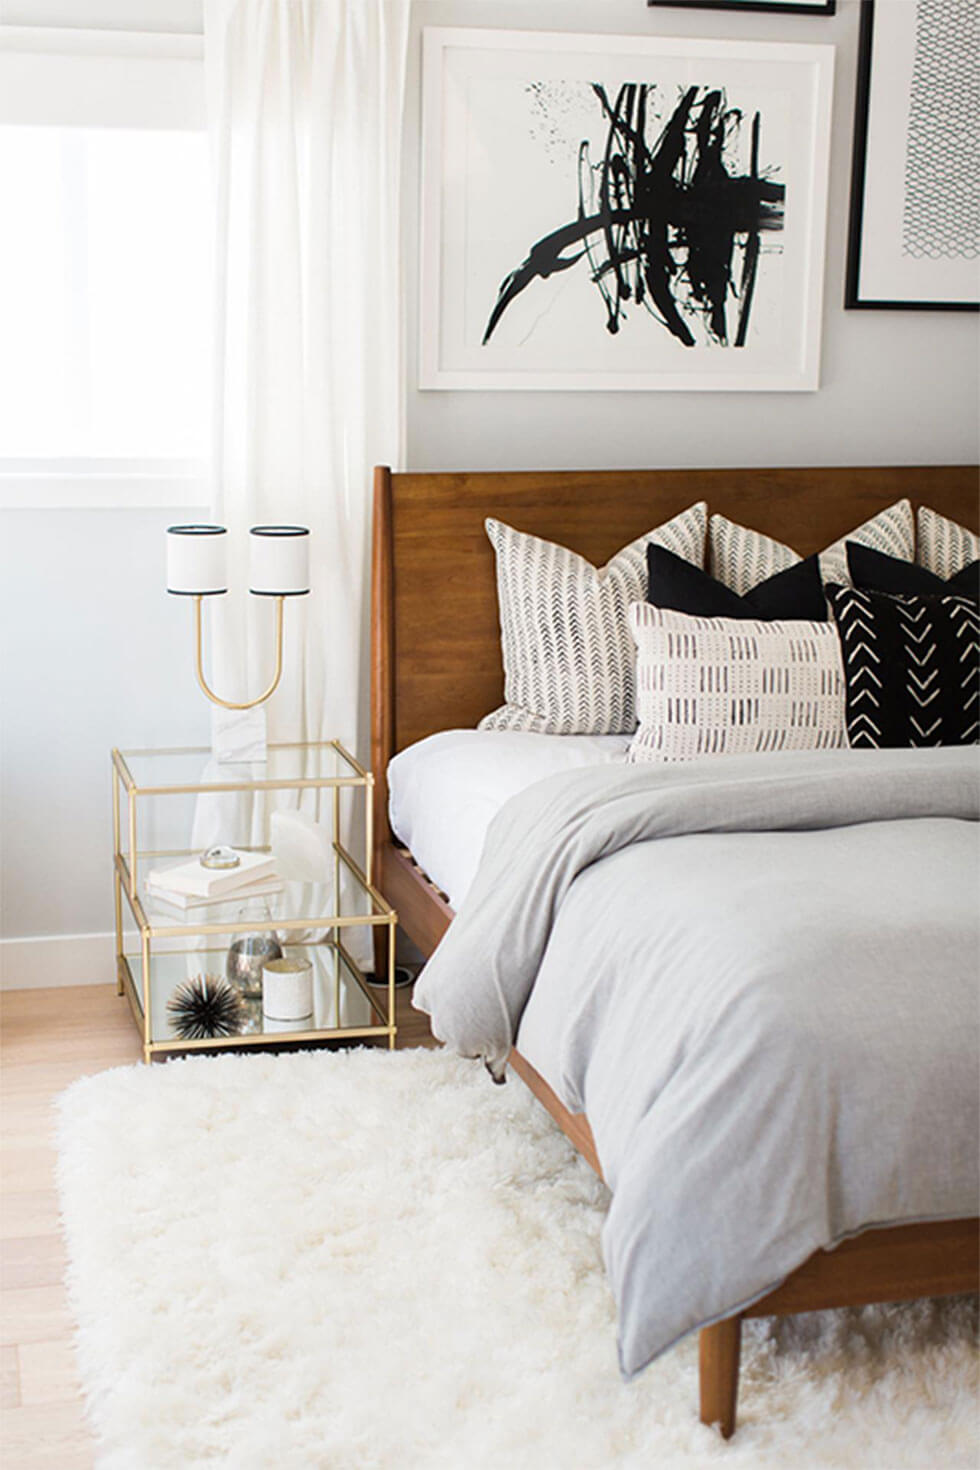 Wooden bed with many pillows for an extravagant feel